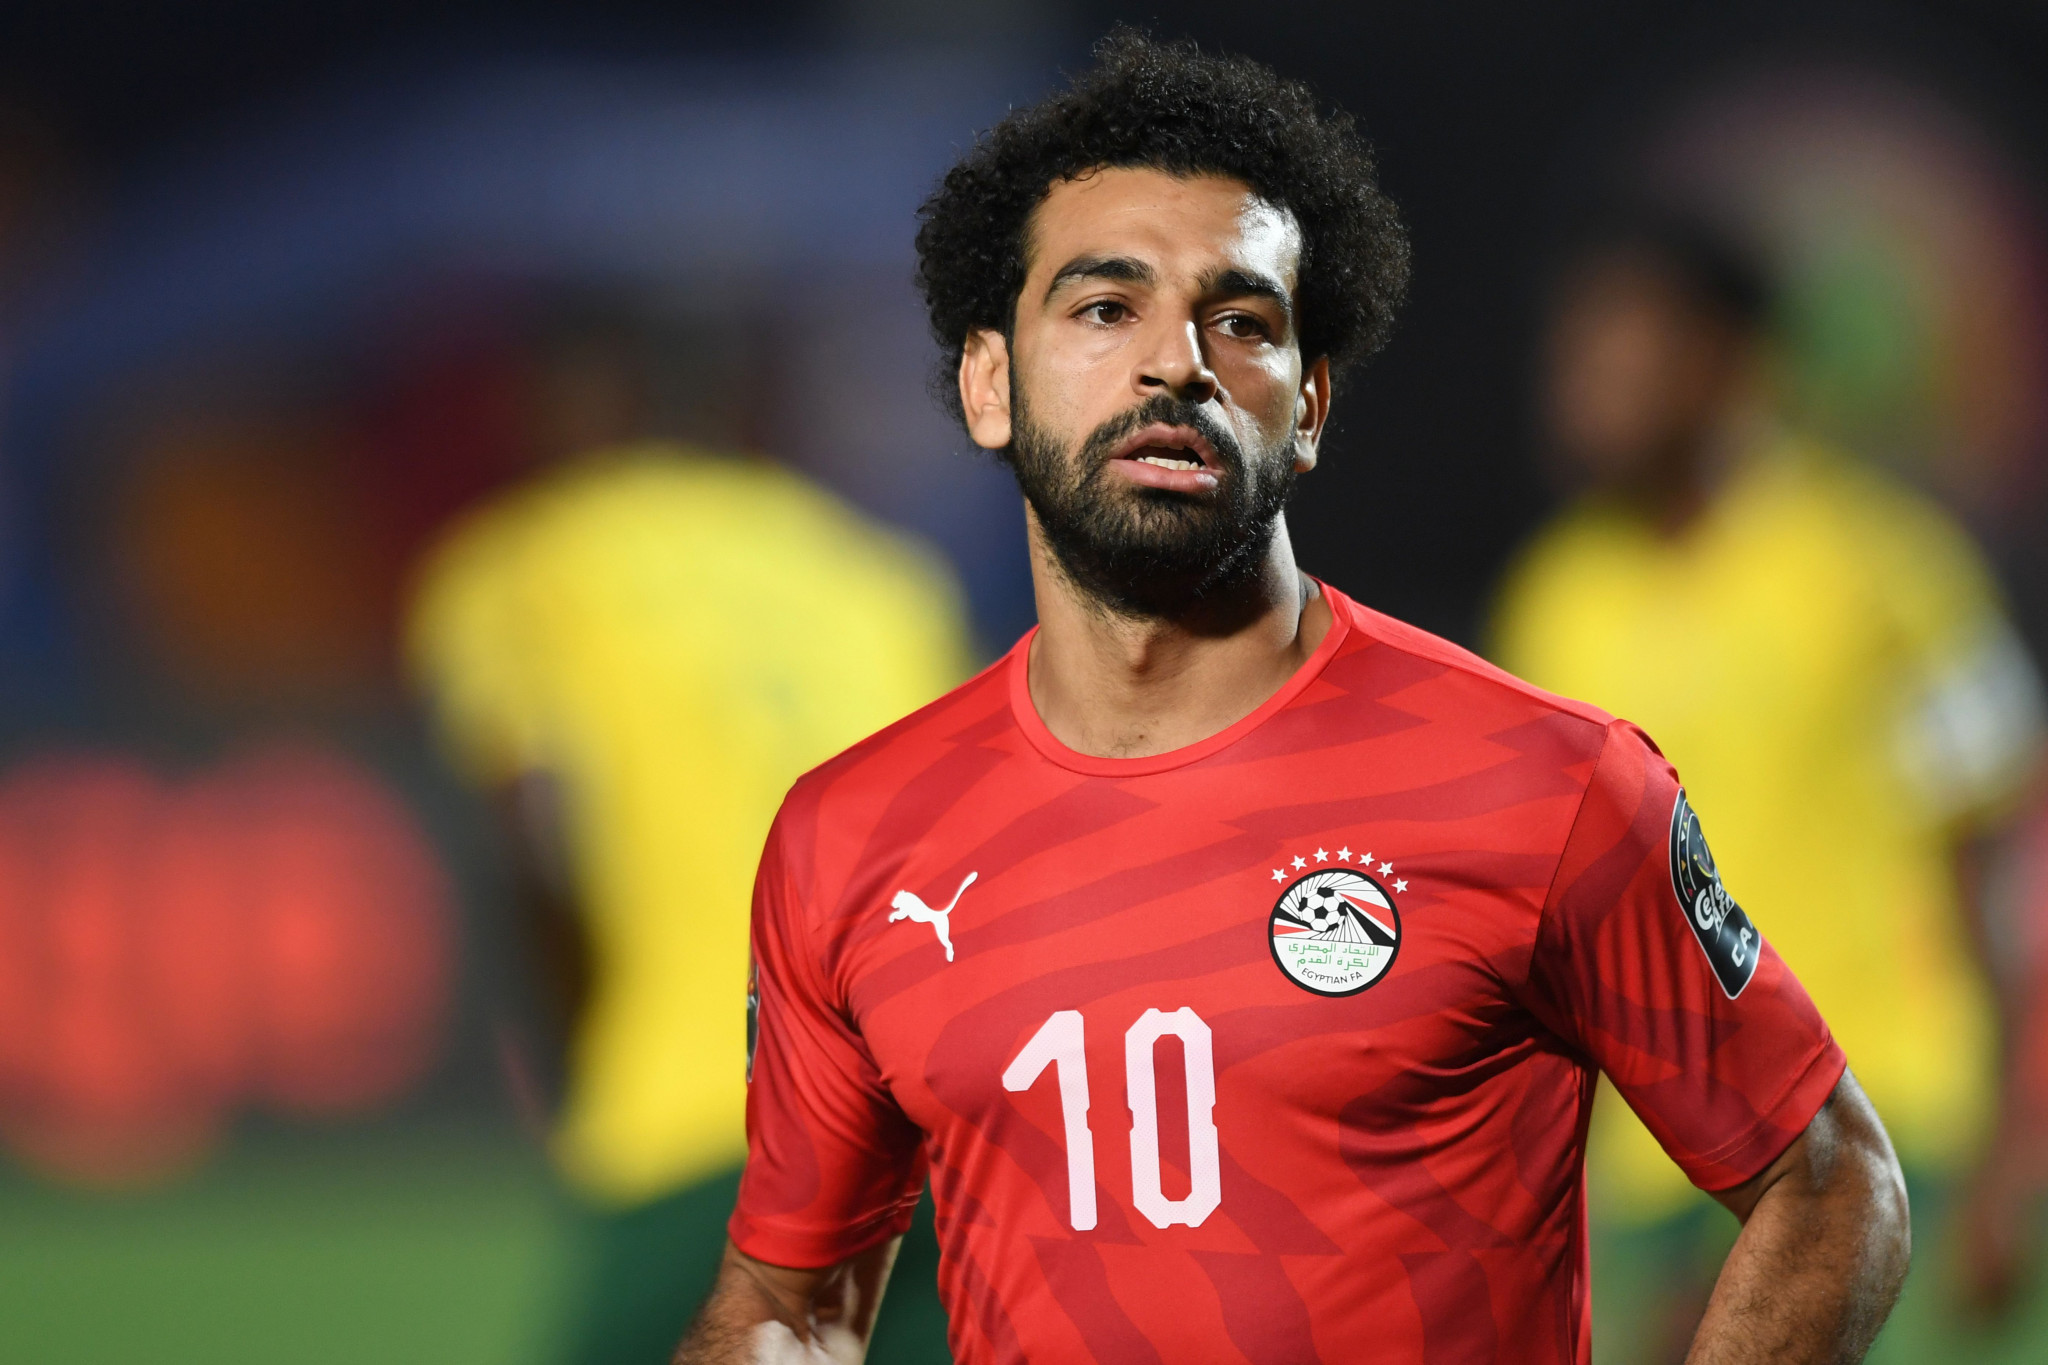 Mohamed Salah could compete for Egypt at Tokyo 2020 ©Getty Images